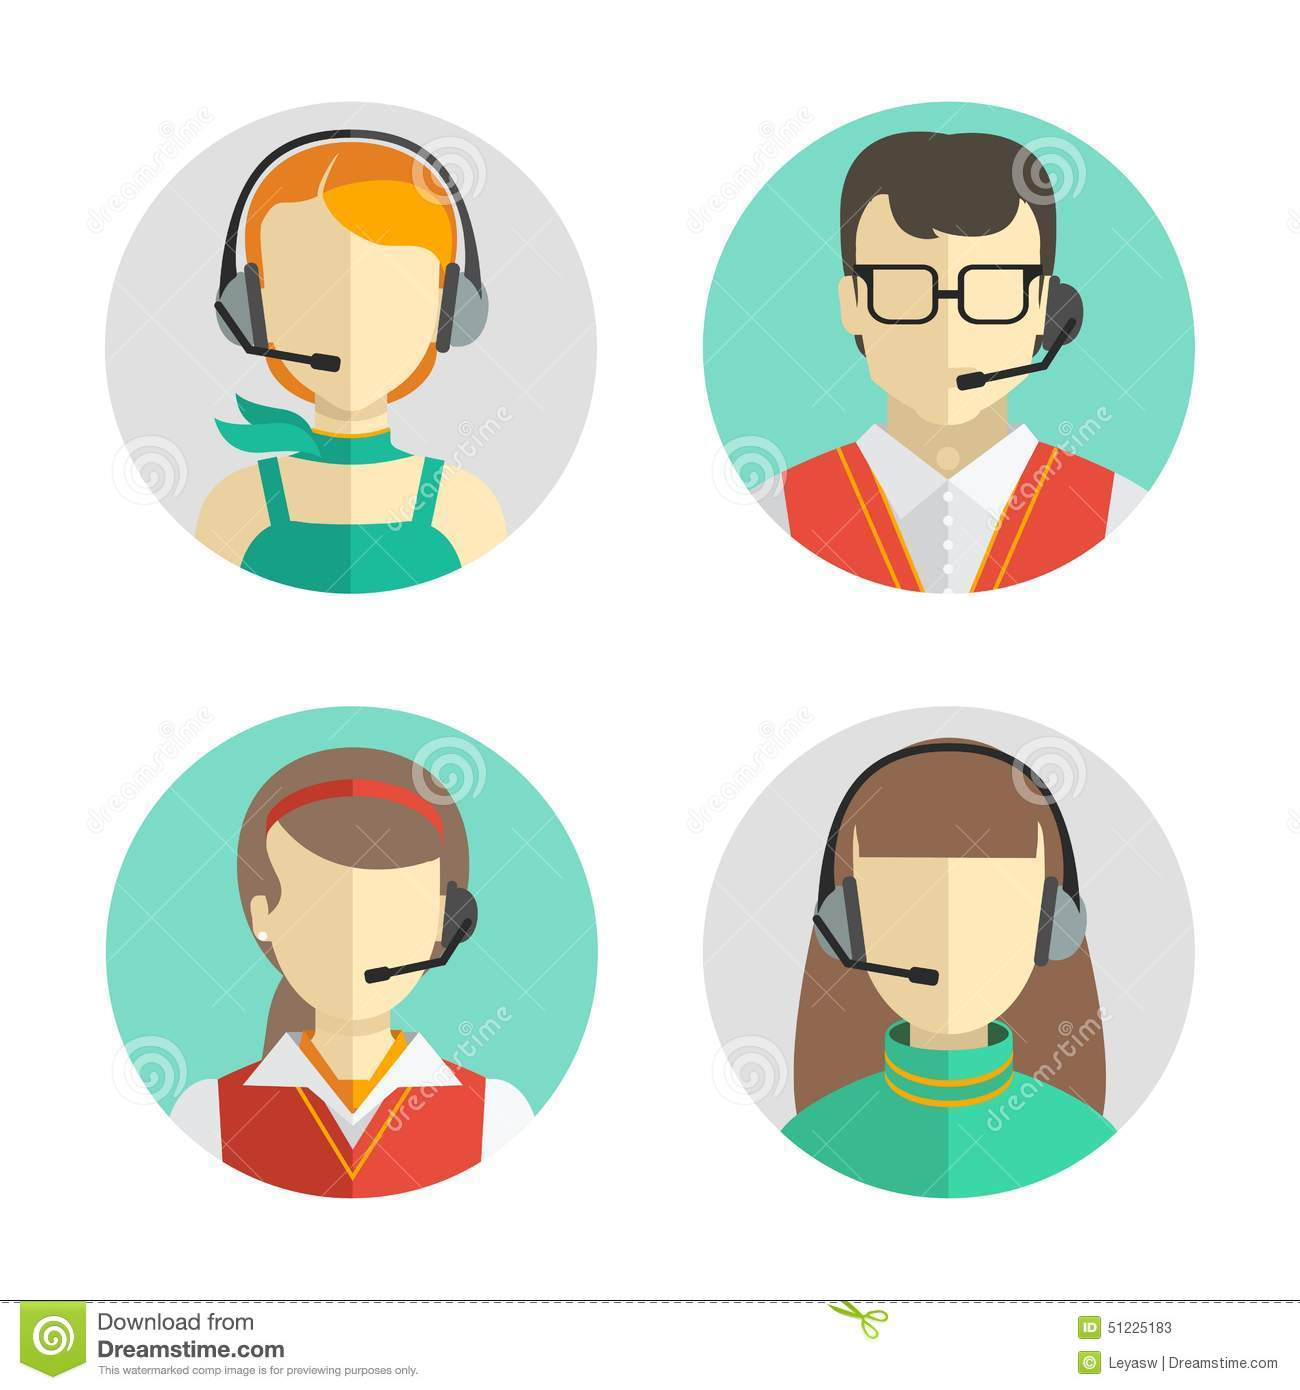 Male And Female Call Center Avatars In A Flat Style With A